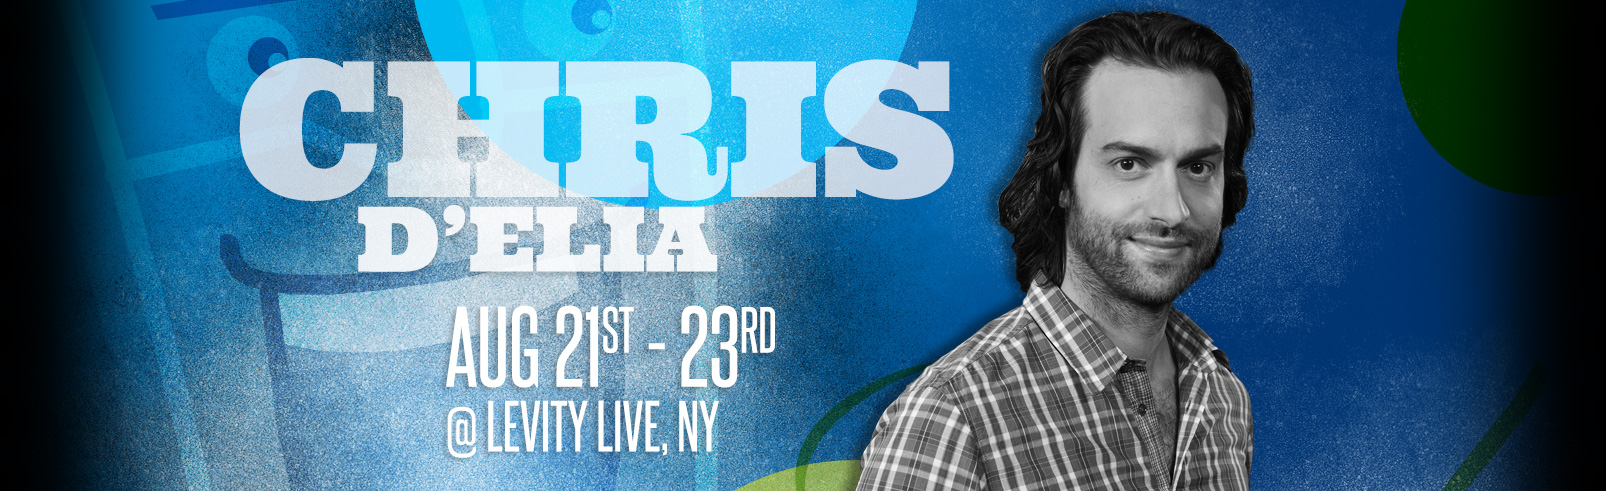 Chris D'Elia @ Levity Live